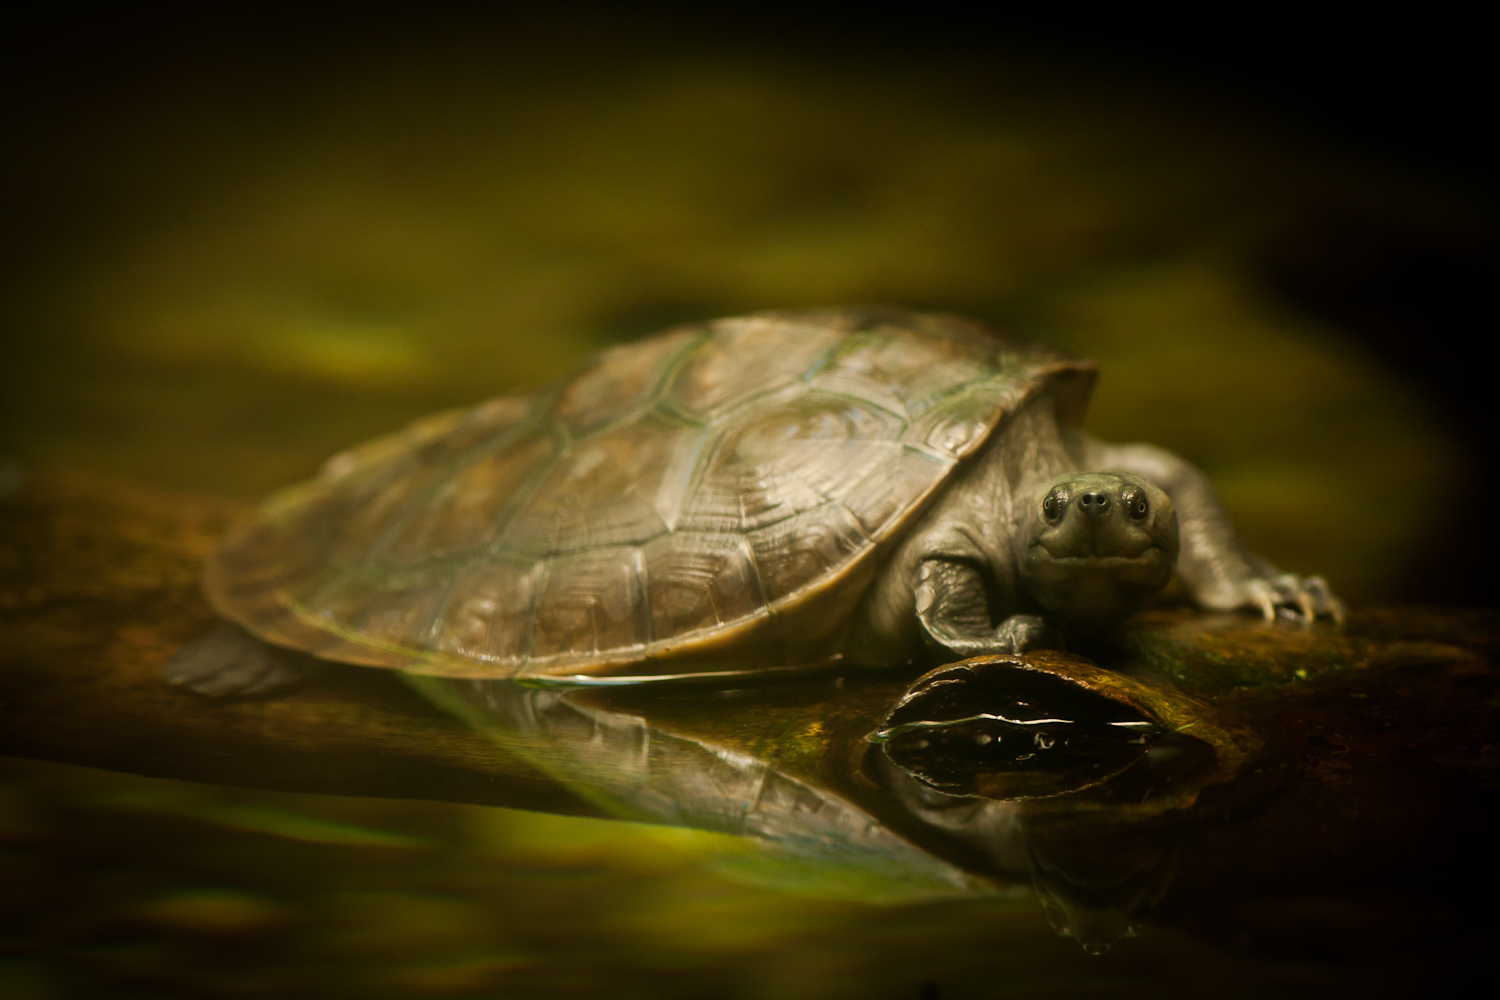 The Curious Turtle